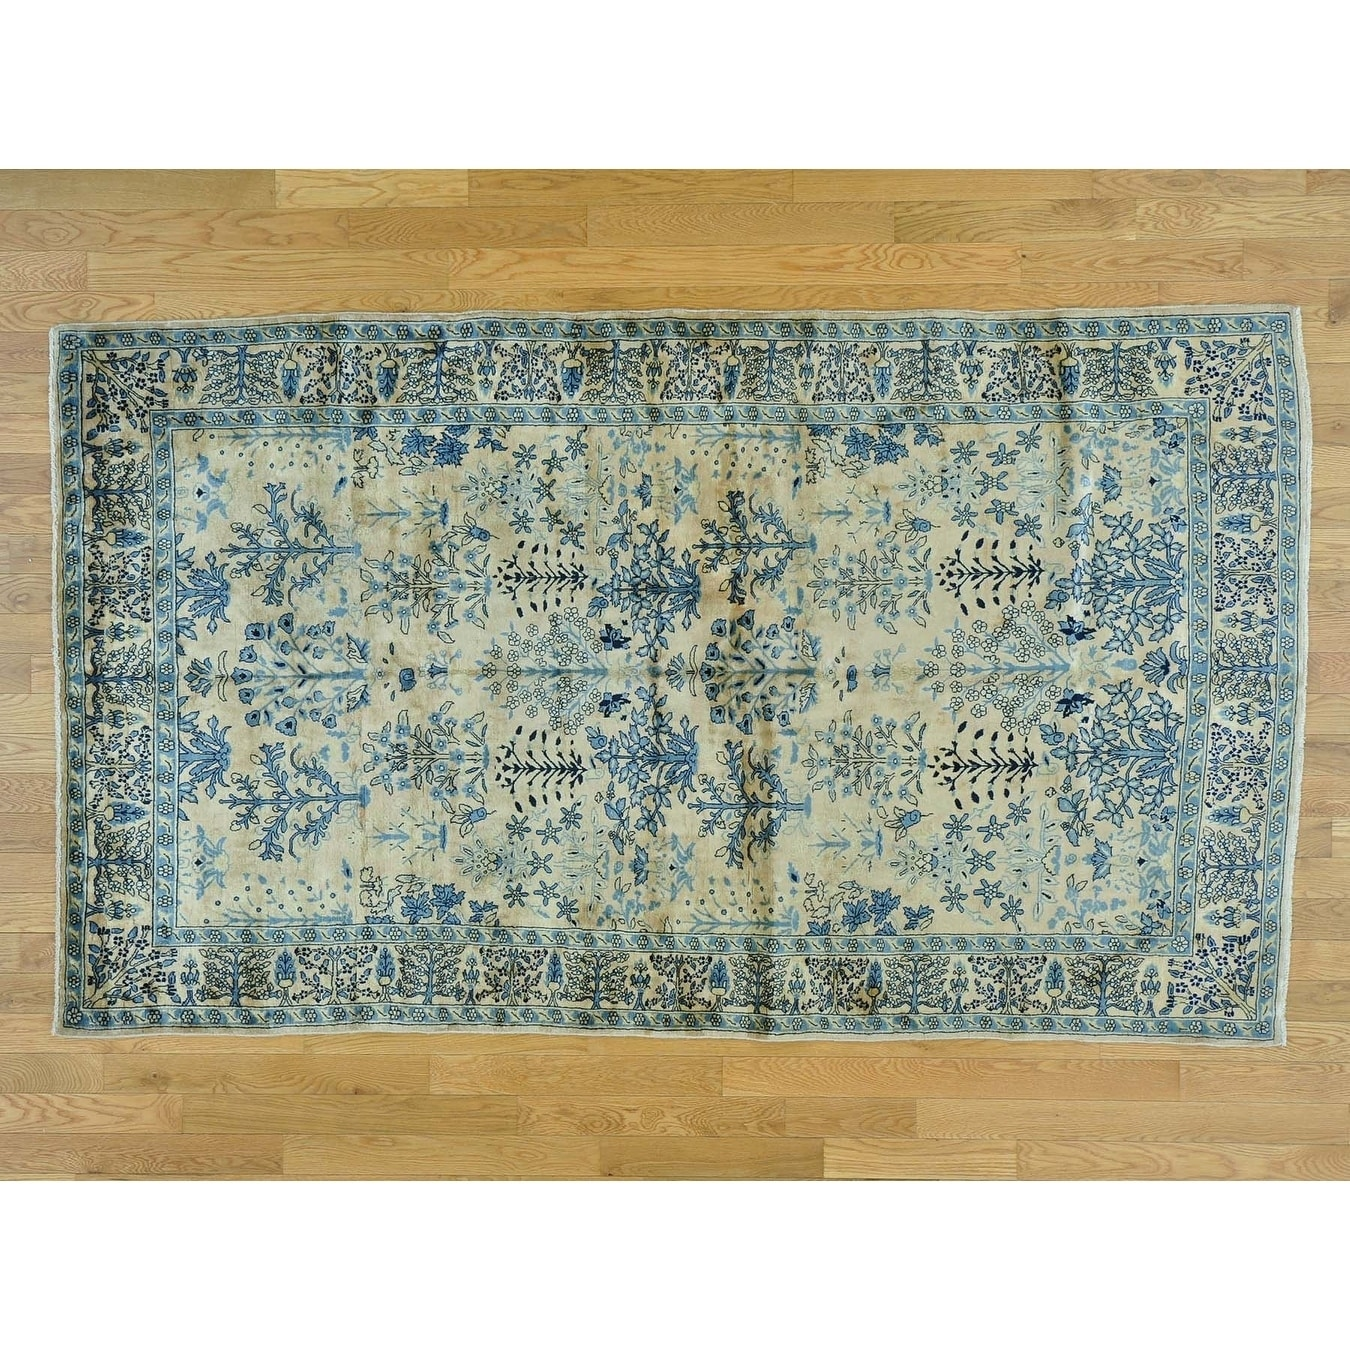 Hand Knotted Beige Antique with Wool Oriental Rug - 5' x 8'4